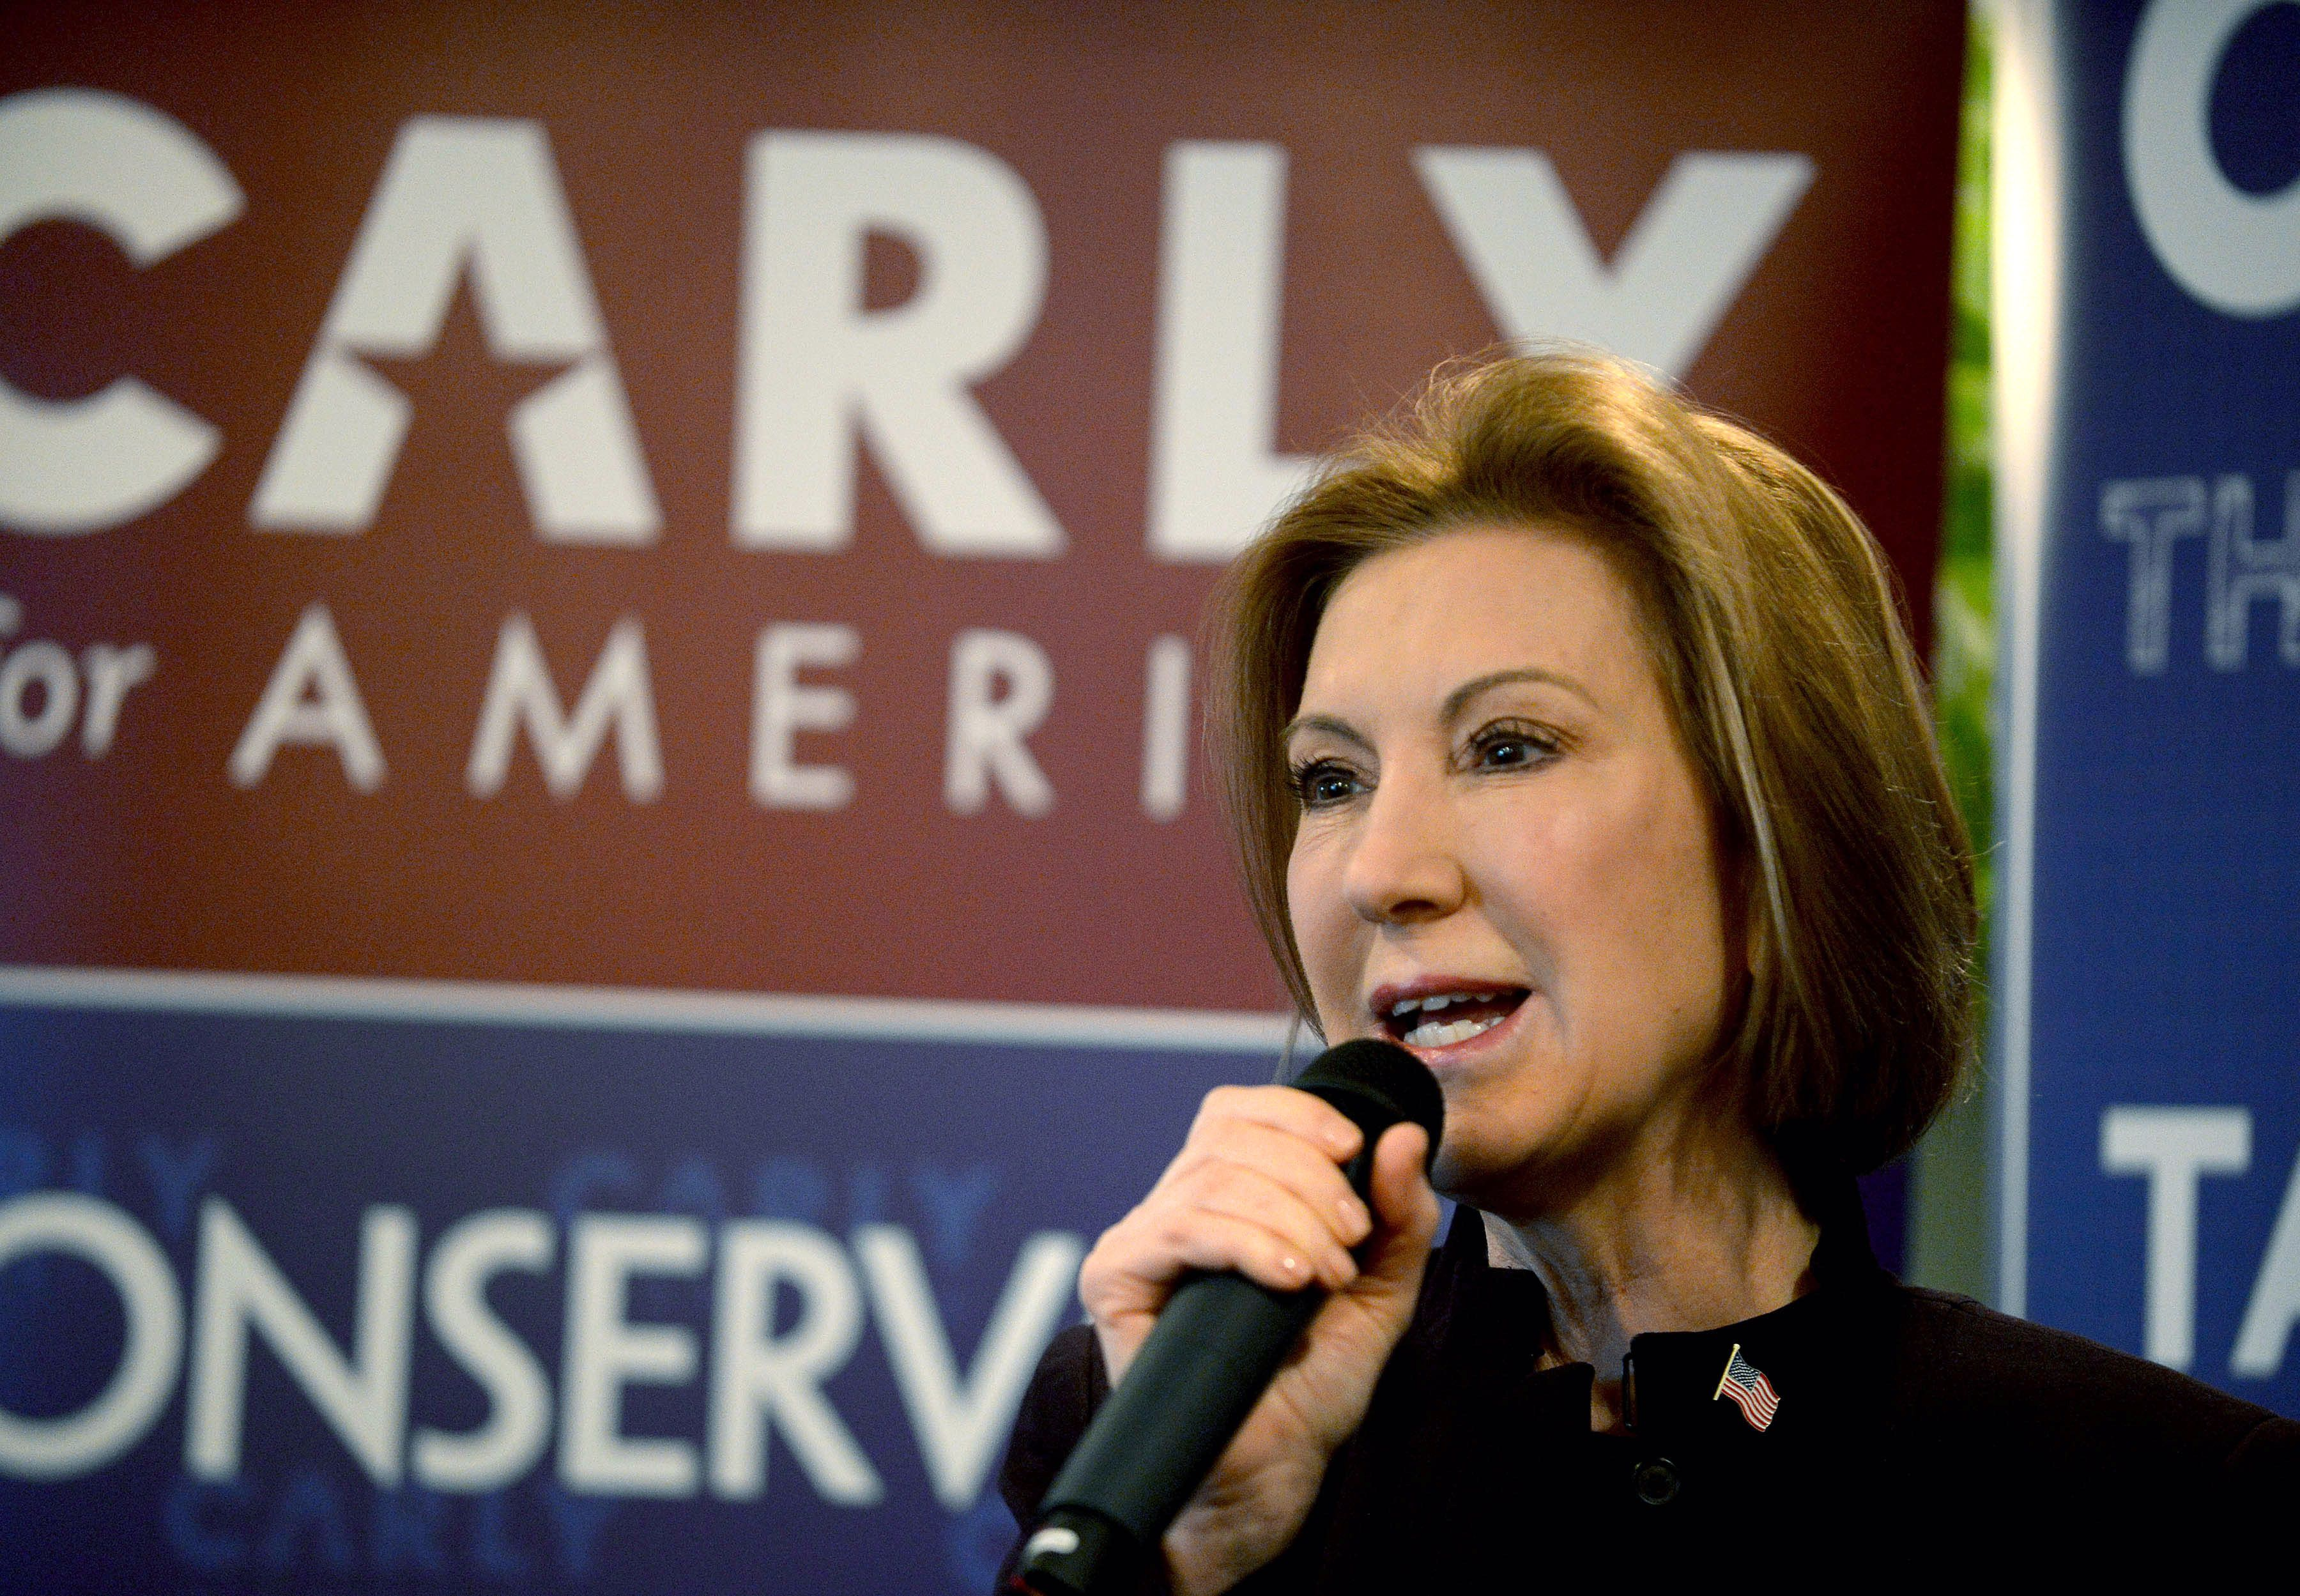 Carly Fiorina Holds 'Coffee With Carly' Campaign Event In Manchester